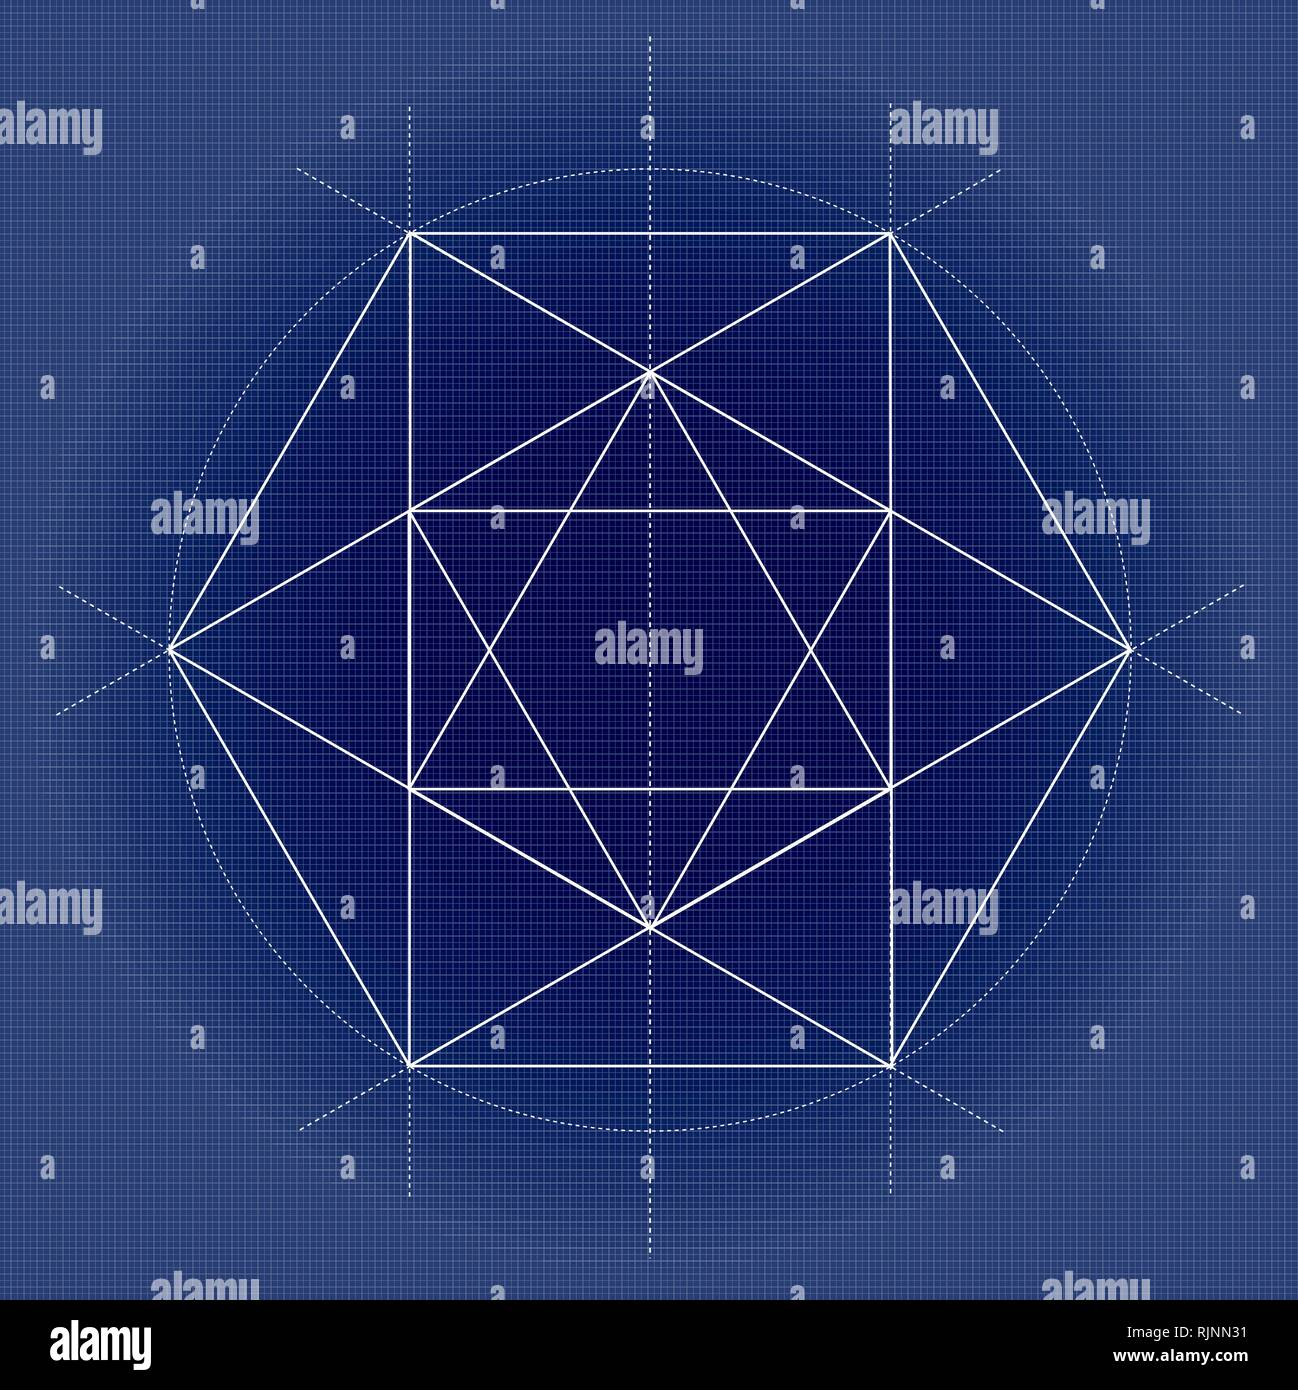 sacred geometry vector illustration on technical paper - Stock Image